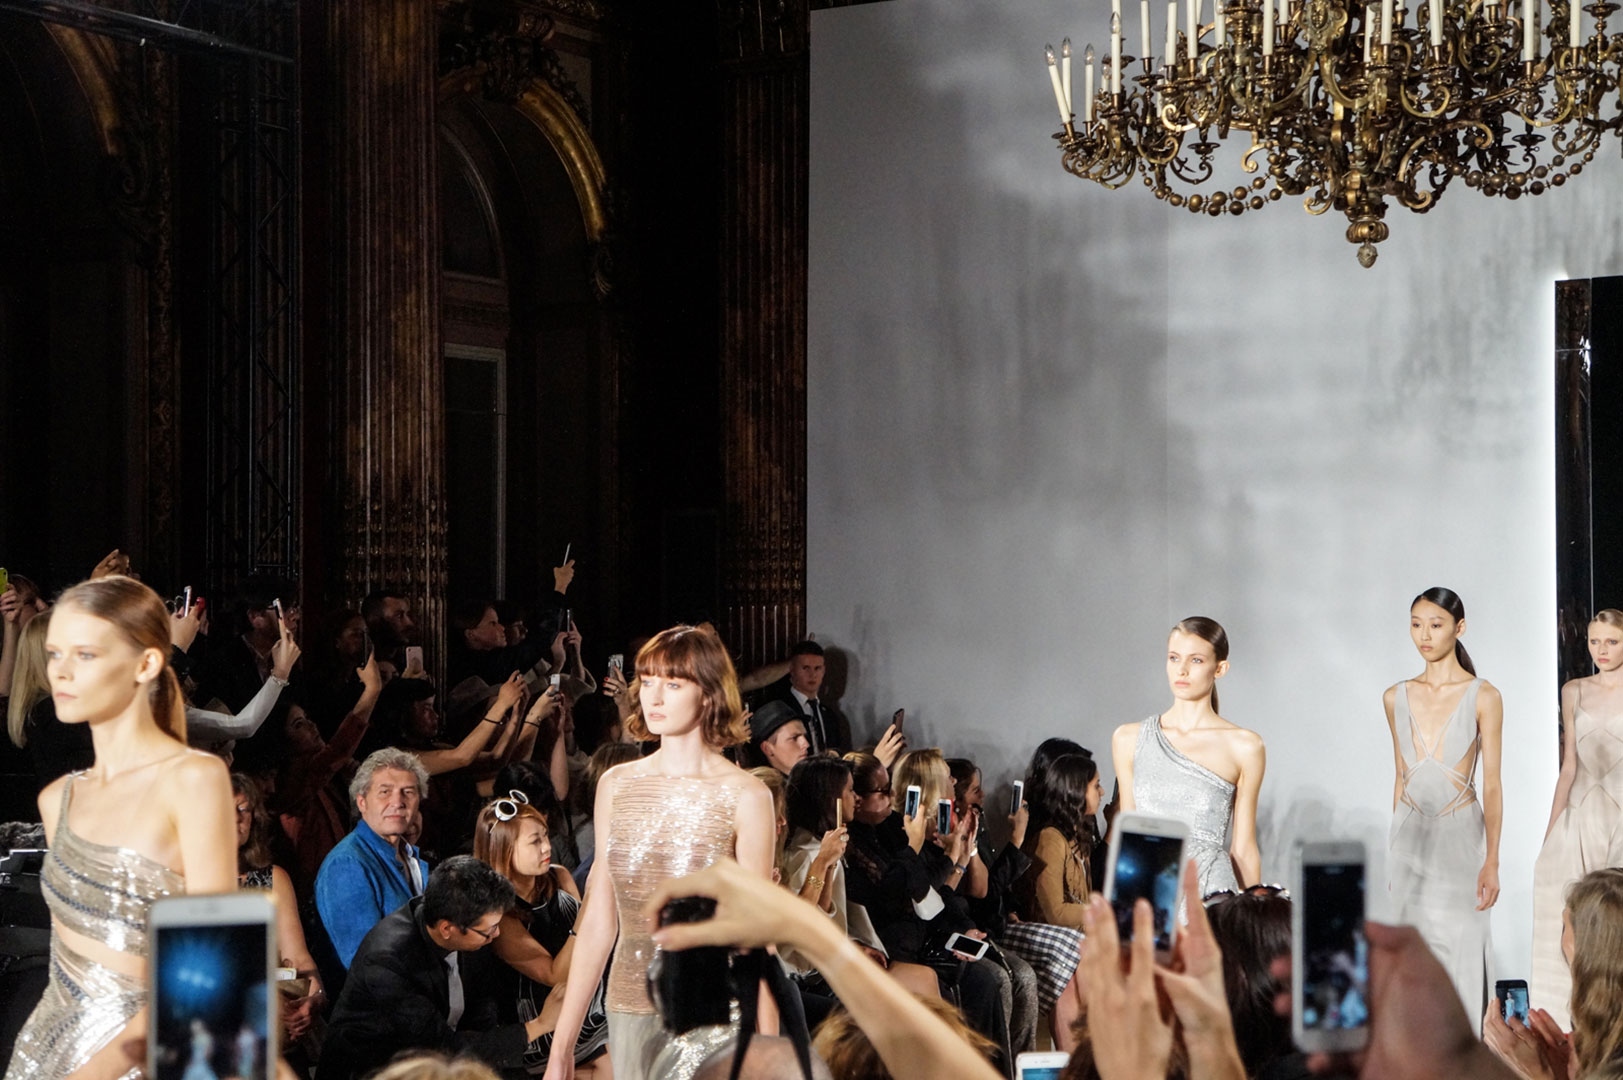 my-paris-fashion-week-diary-paris-by-polina-paraskevopoulou-all-rights-reserved-21